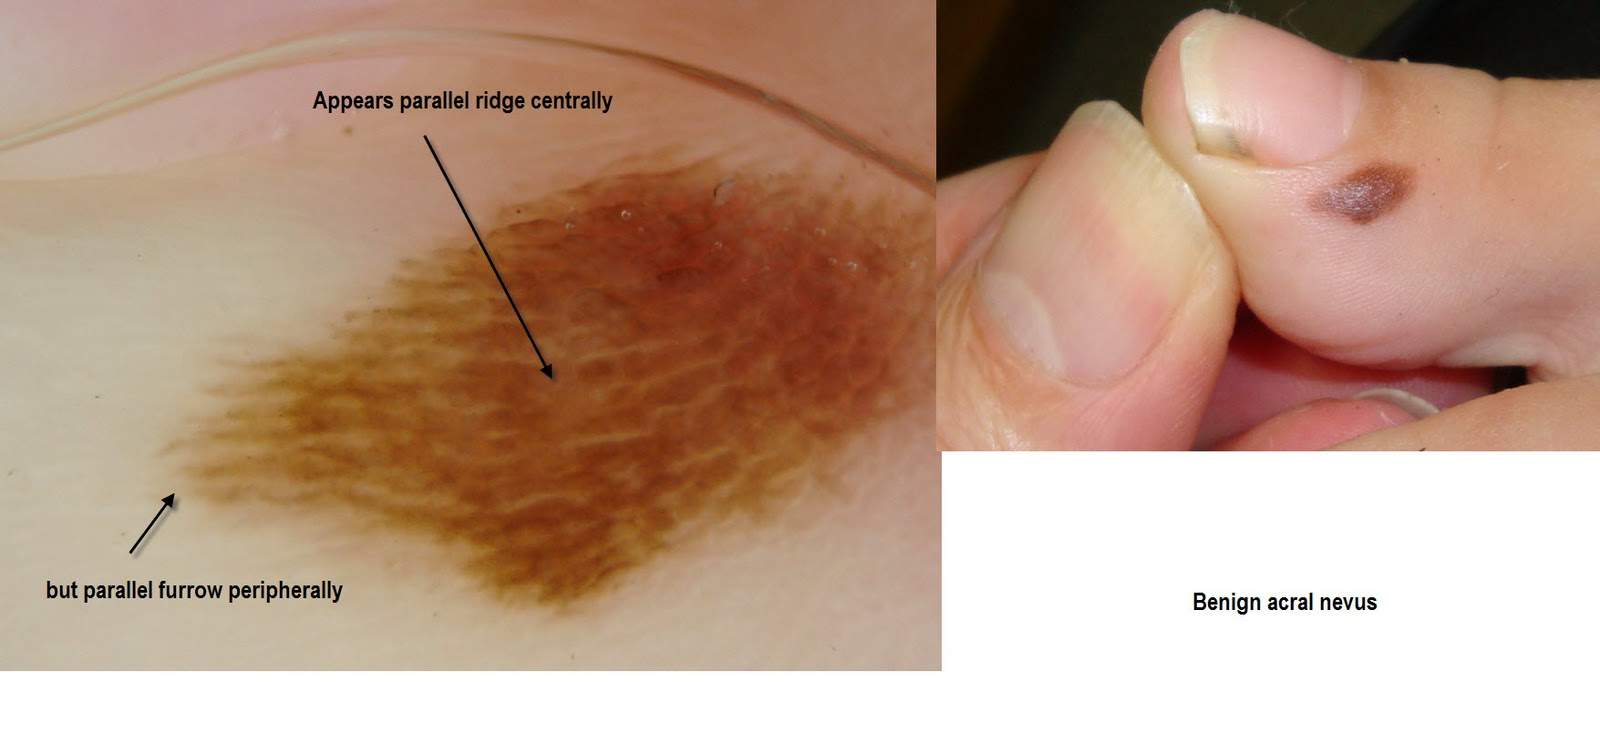 Suspected Toenail Melanoma | Melanoma Research Foundation